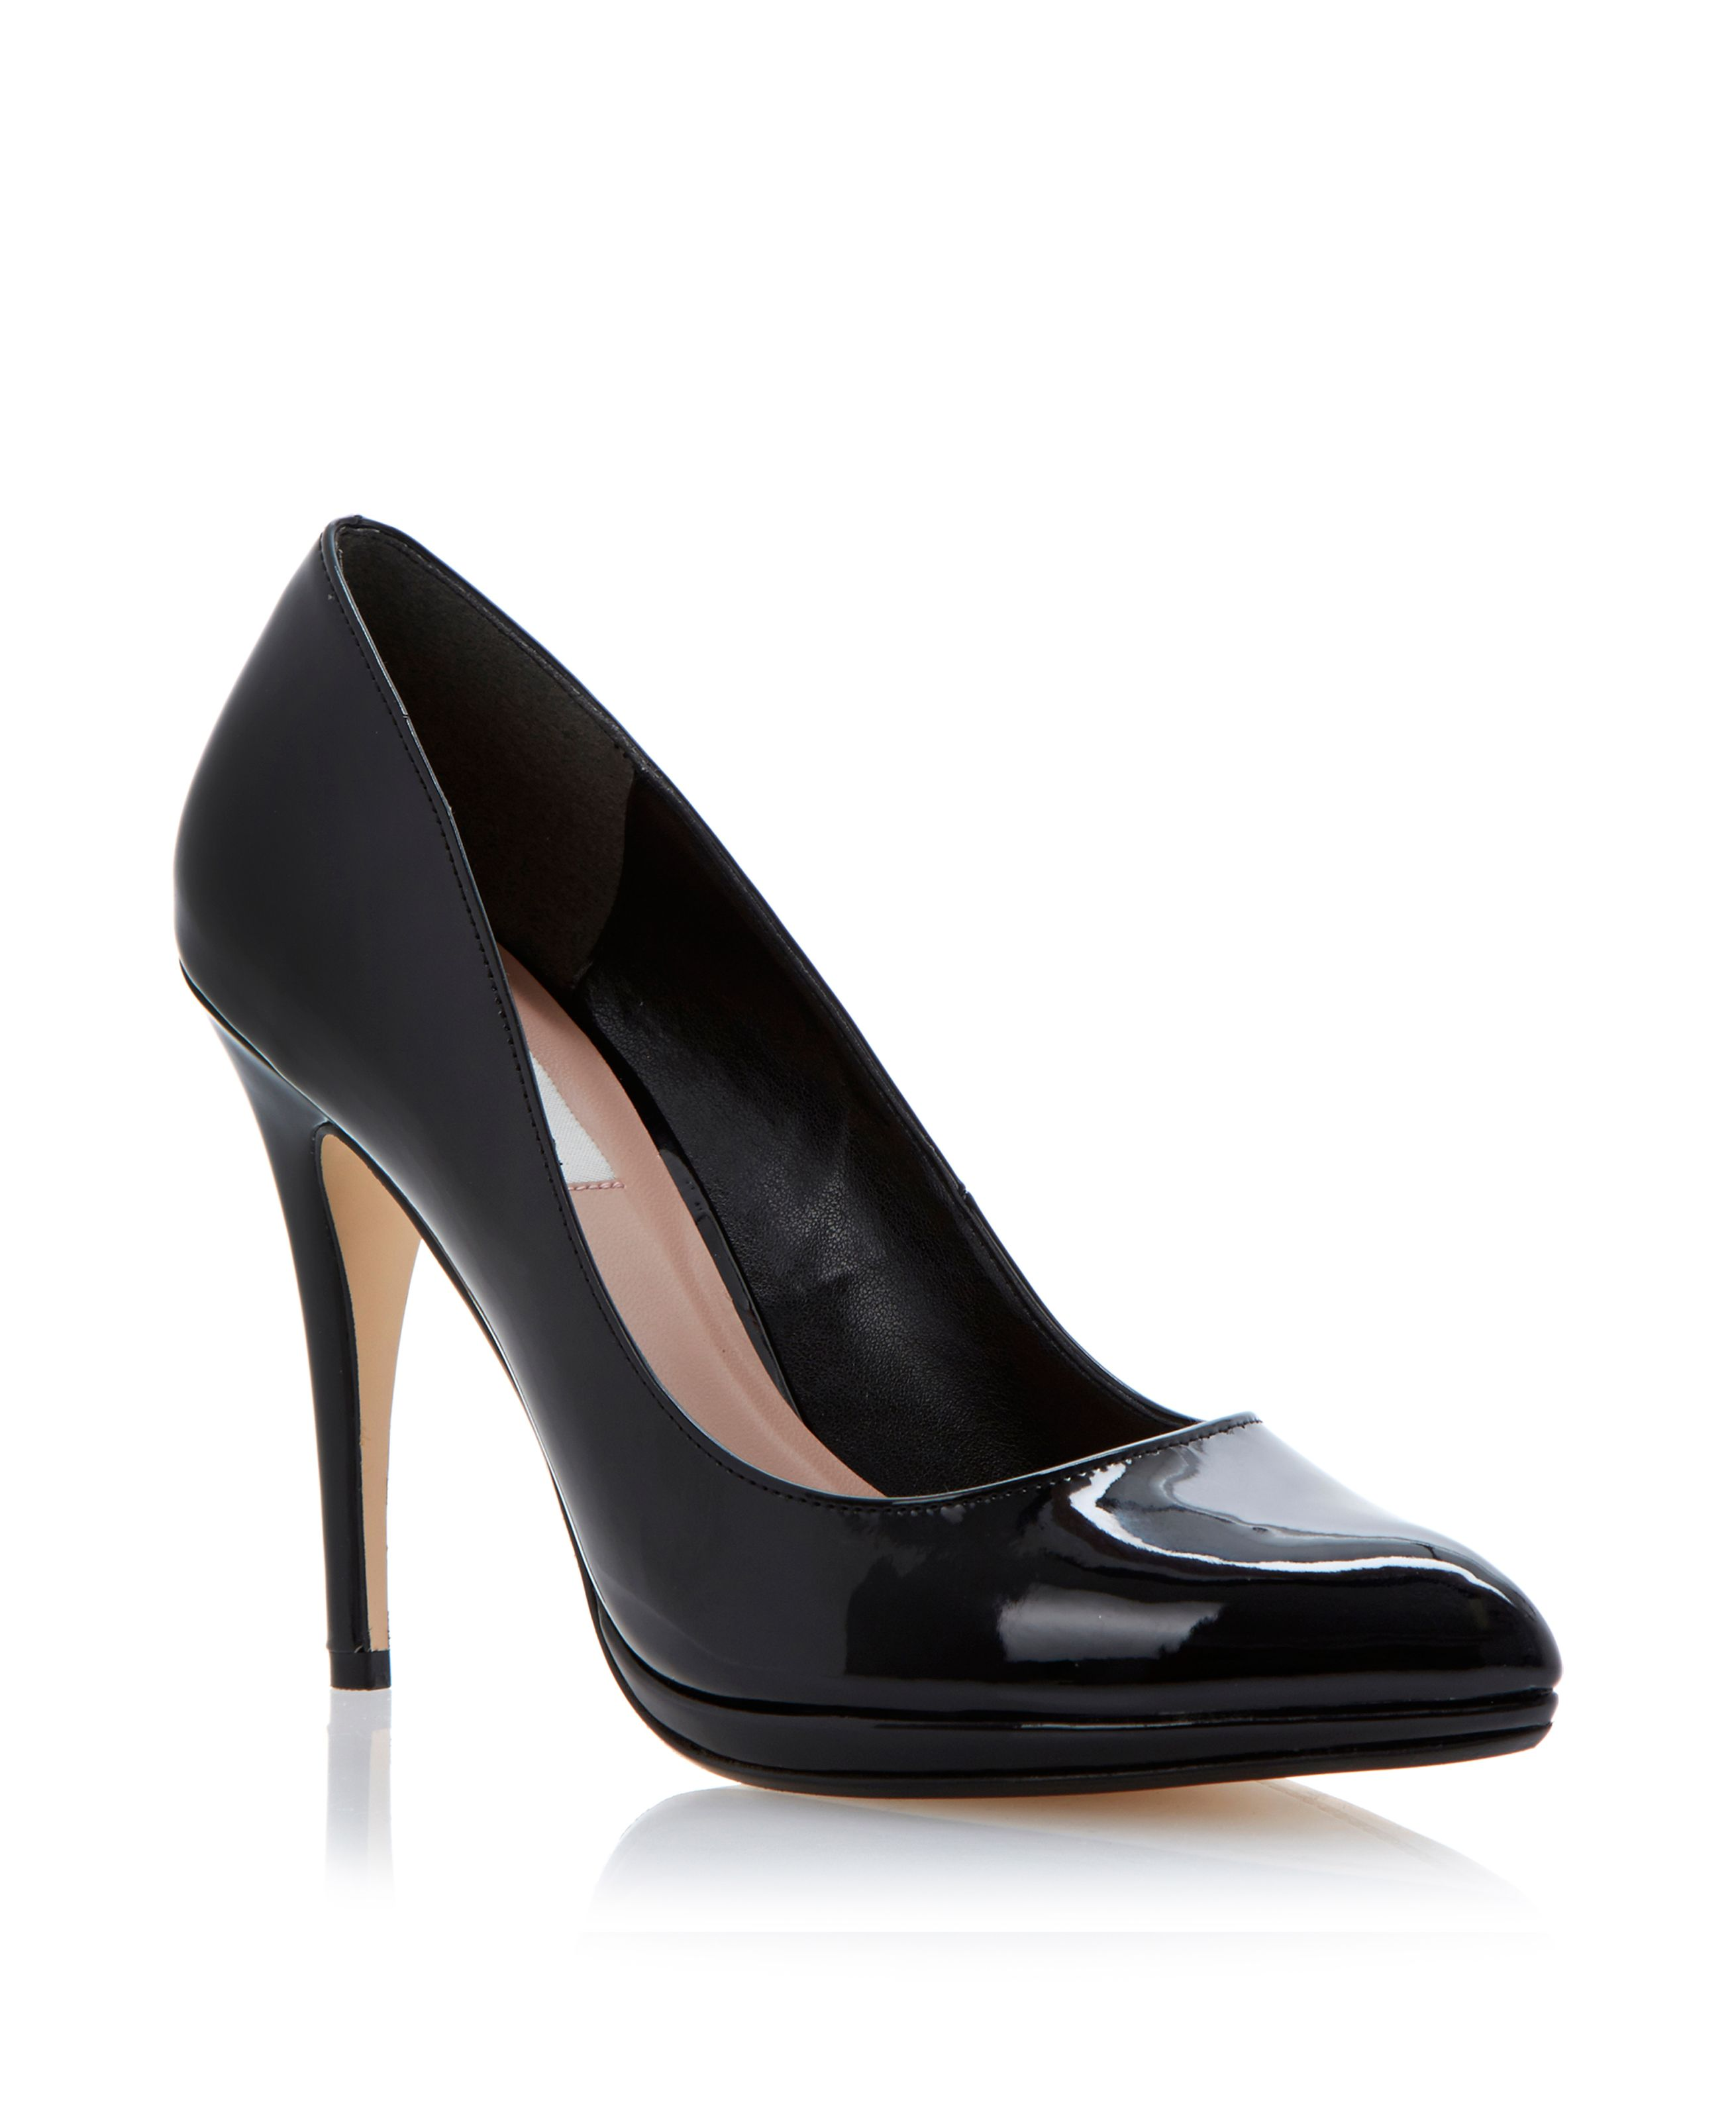 Acutey slim platform pointed court shoes